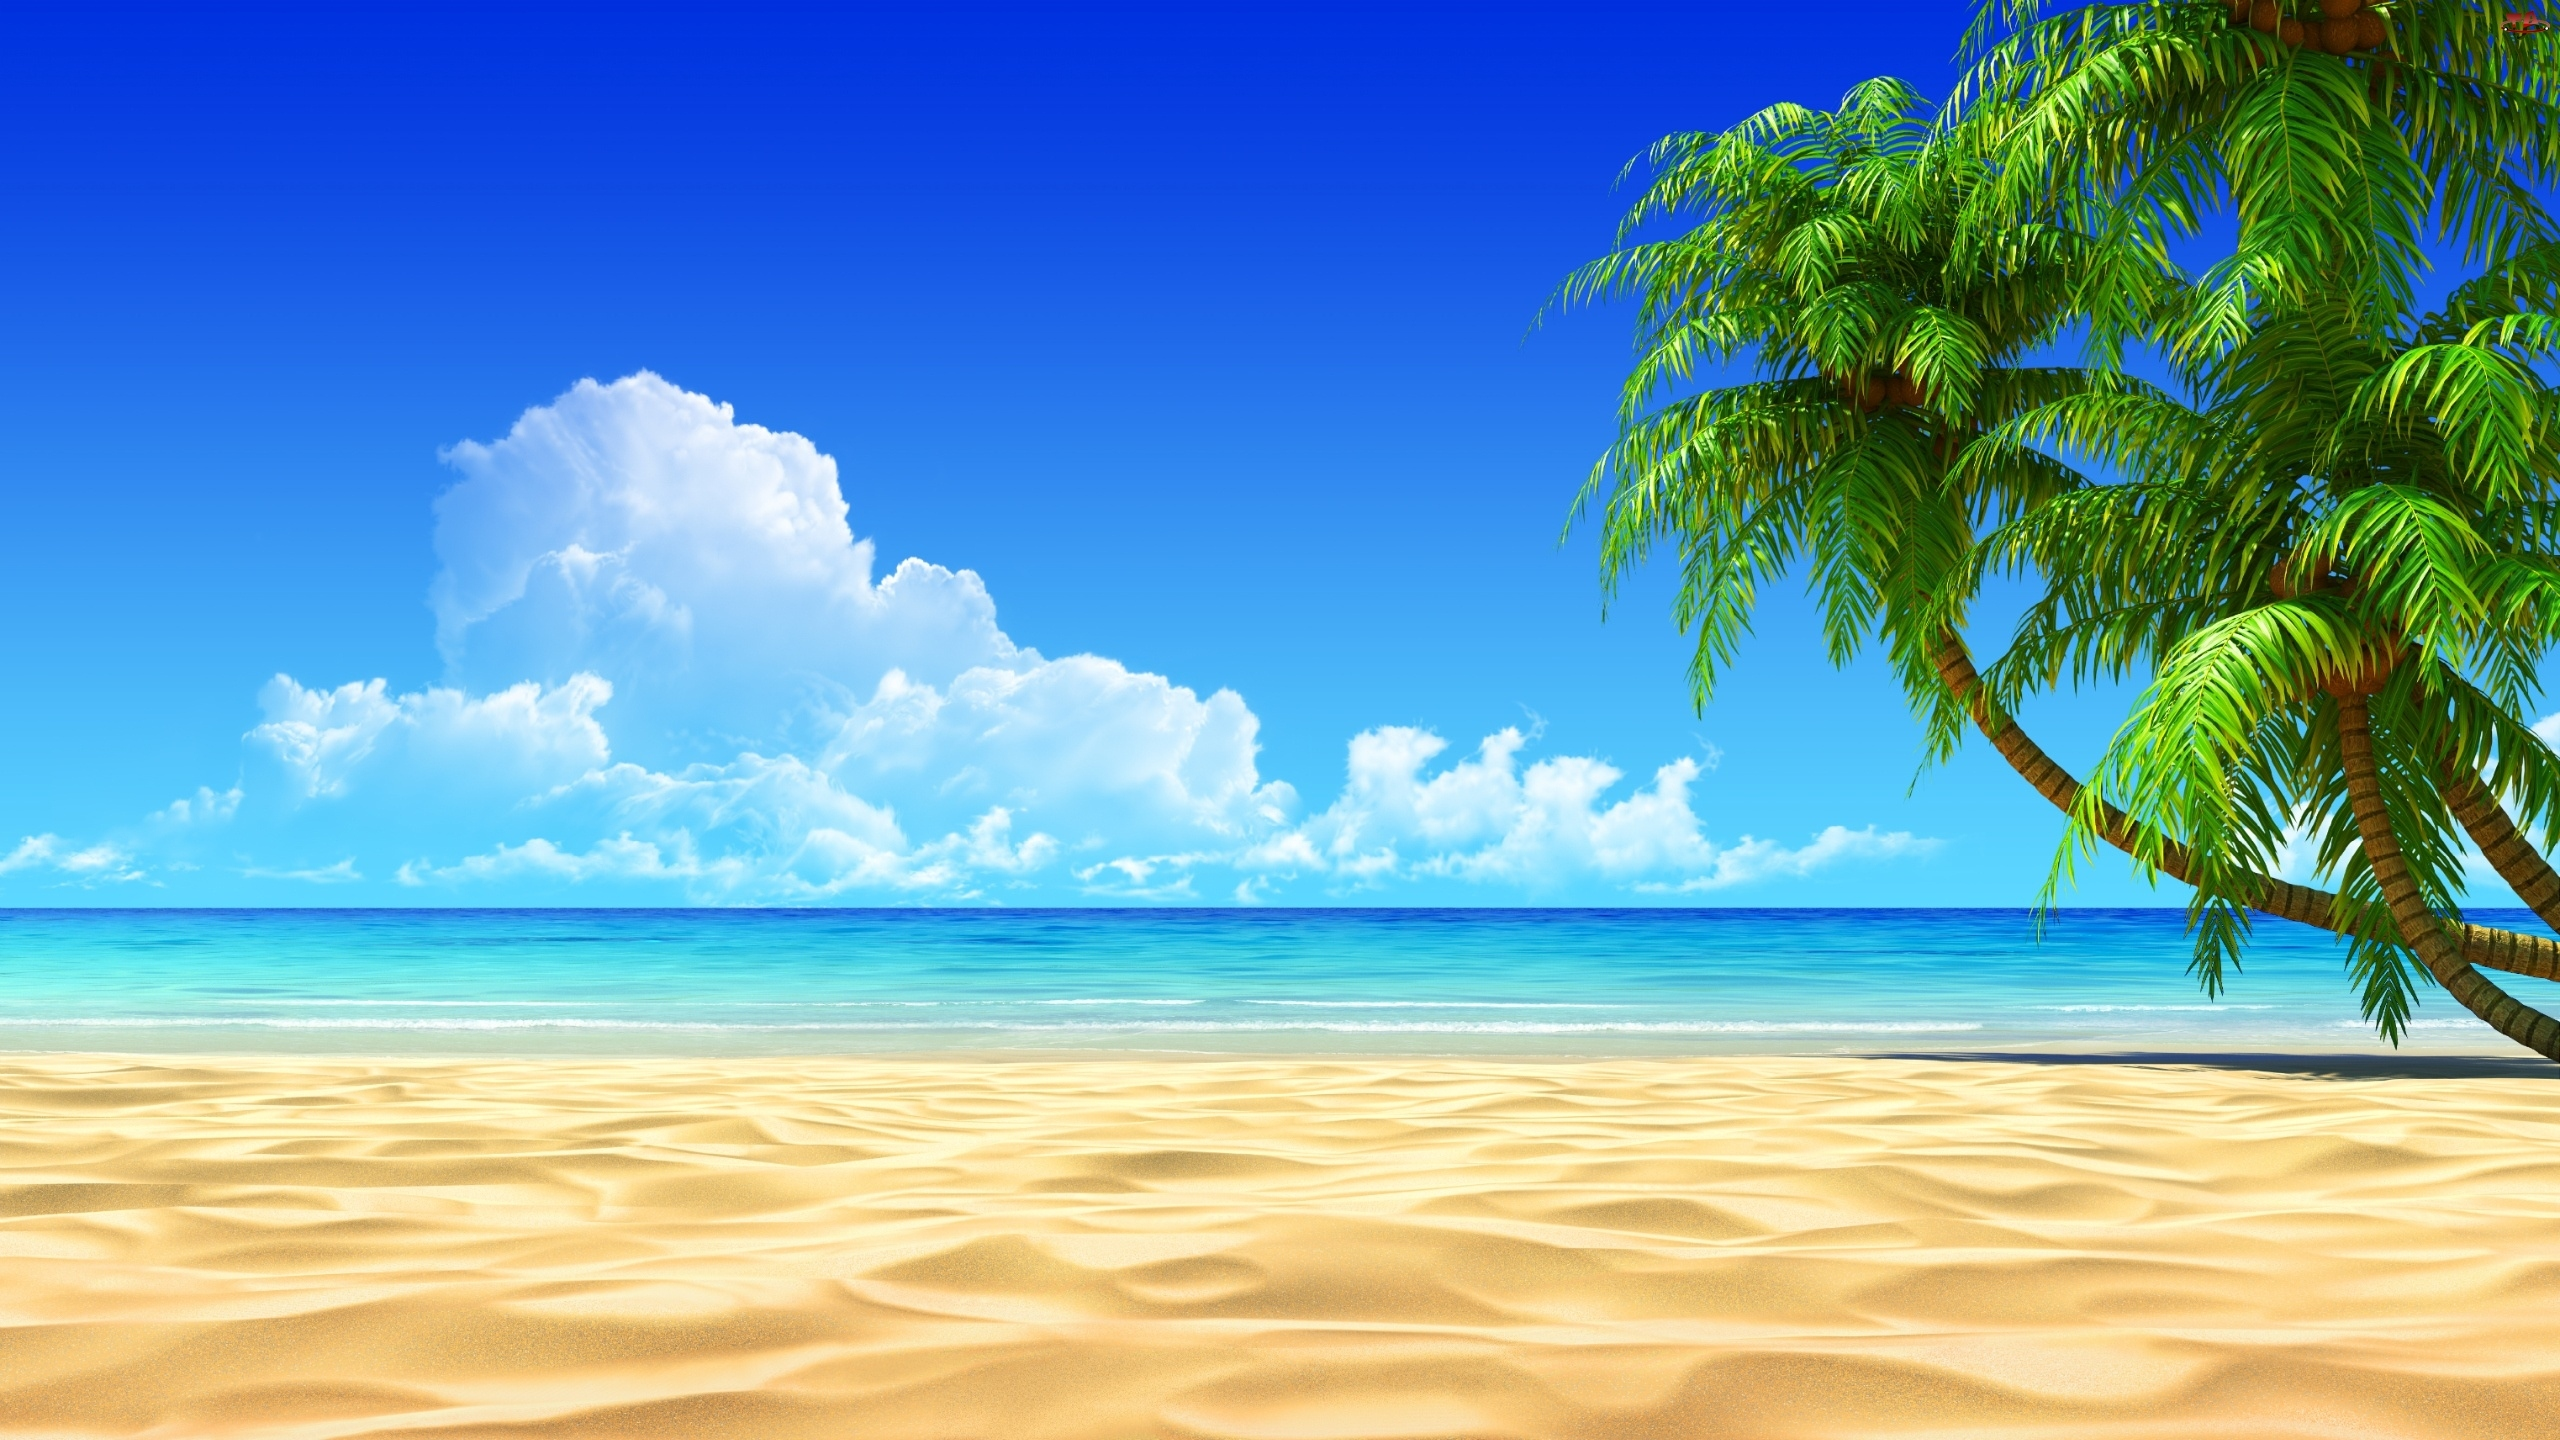 Beach HD wallpaper for download